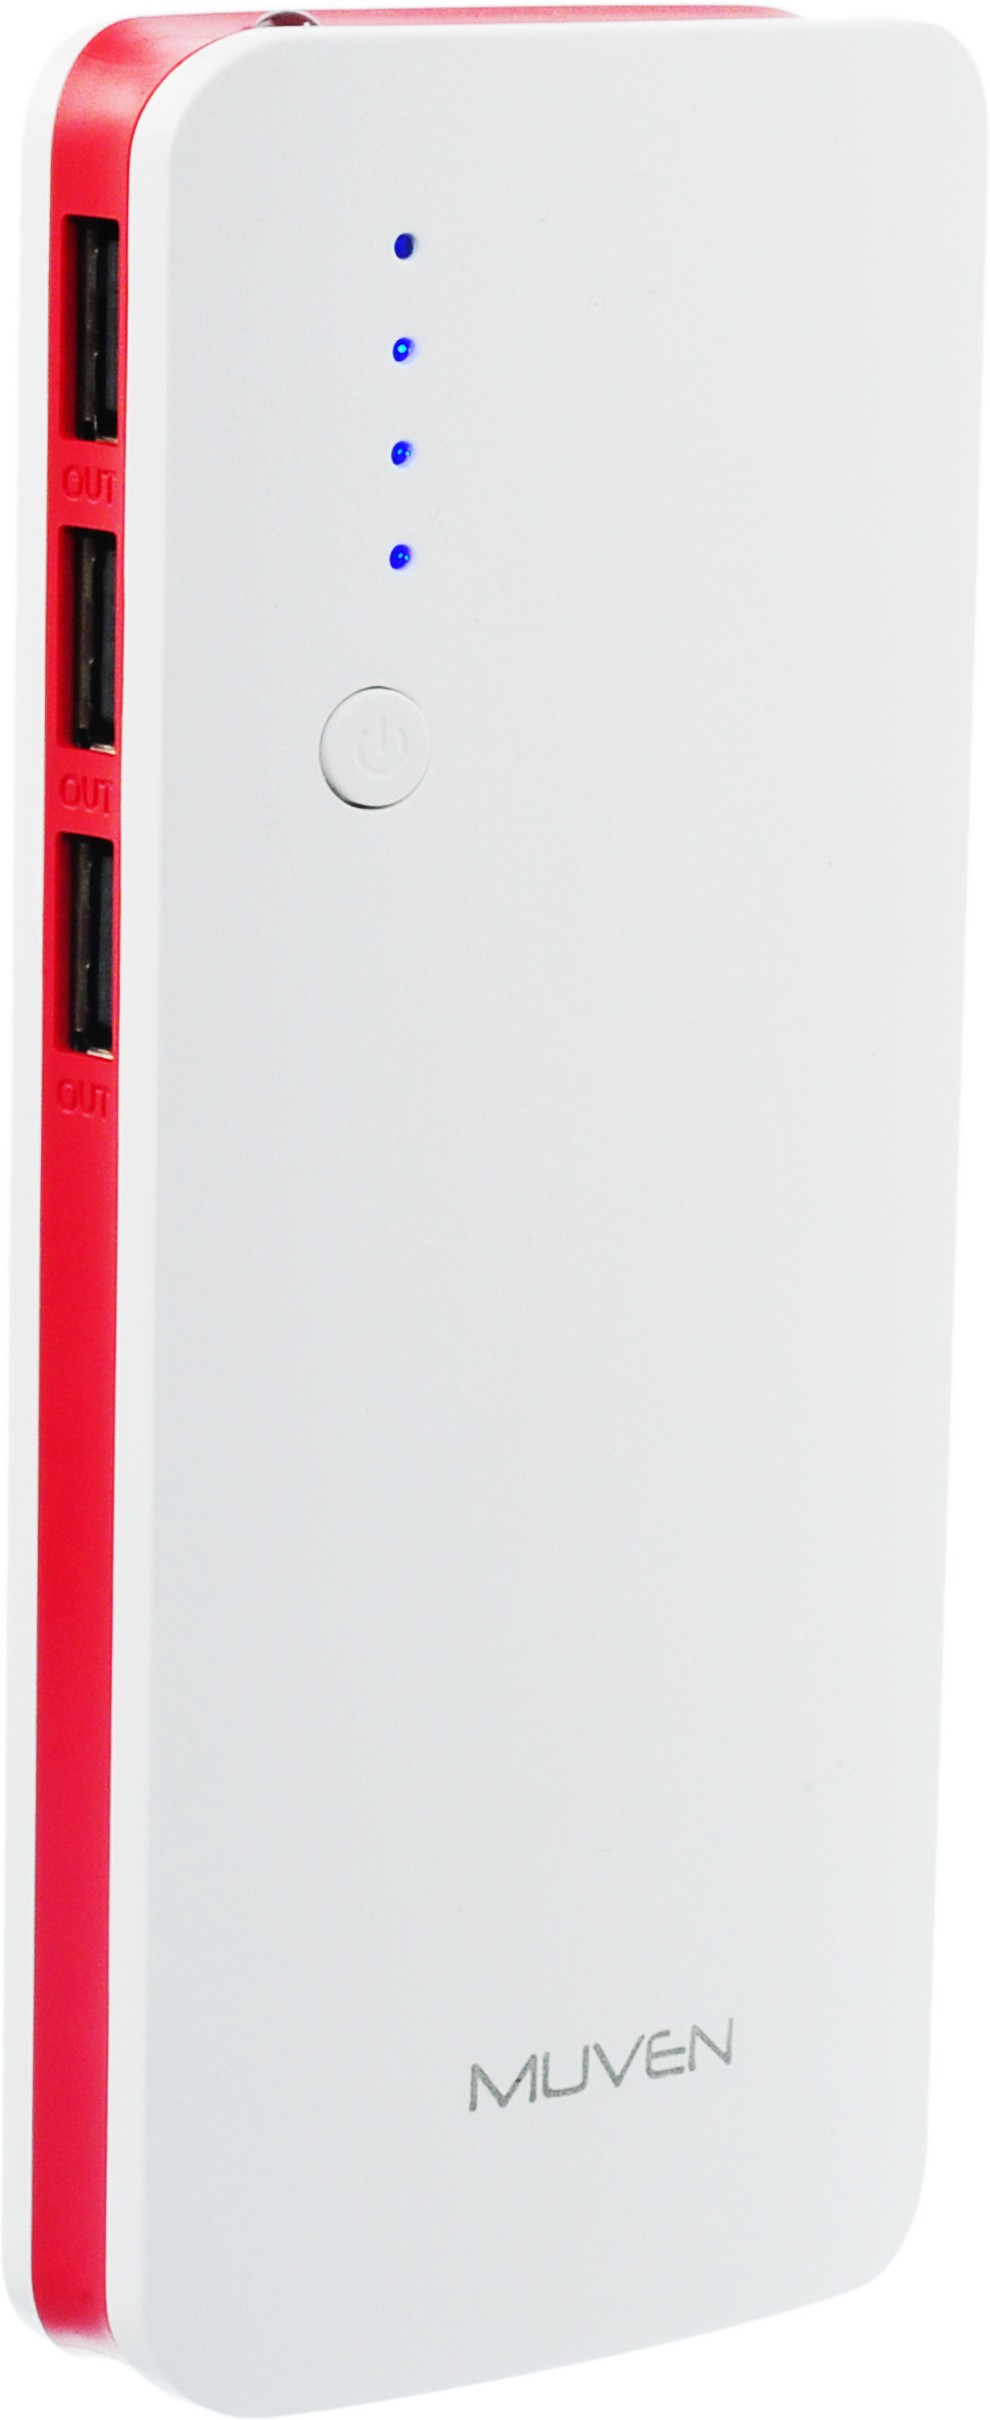 Muven C500 Portable Charger 10000 mAh Power Bank(Red, Lithium-ion)